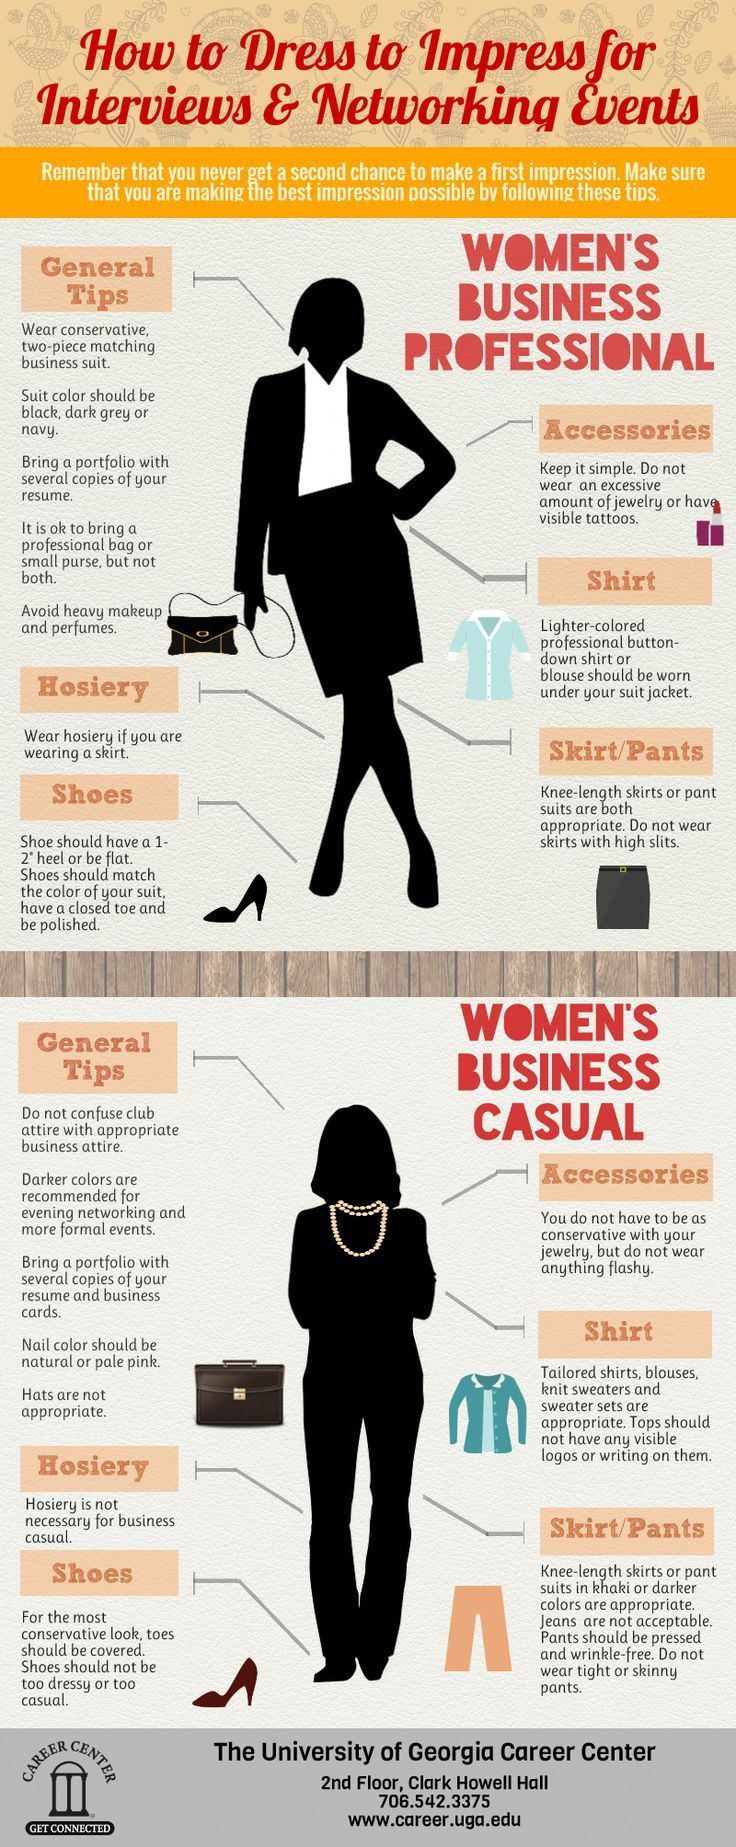 17 best ideas about interview attire women this is a good guide for women to dress by for an interview or any event when they are not sure what to wear professional attire vs